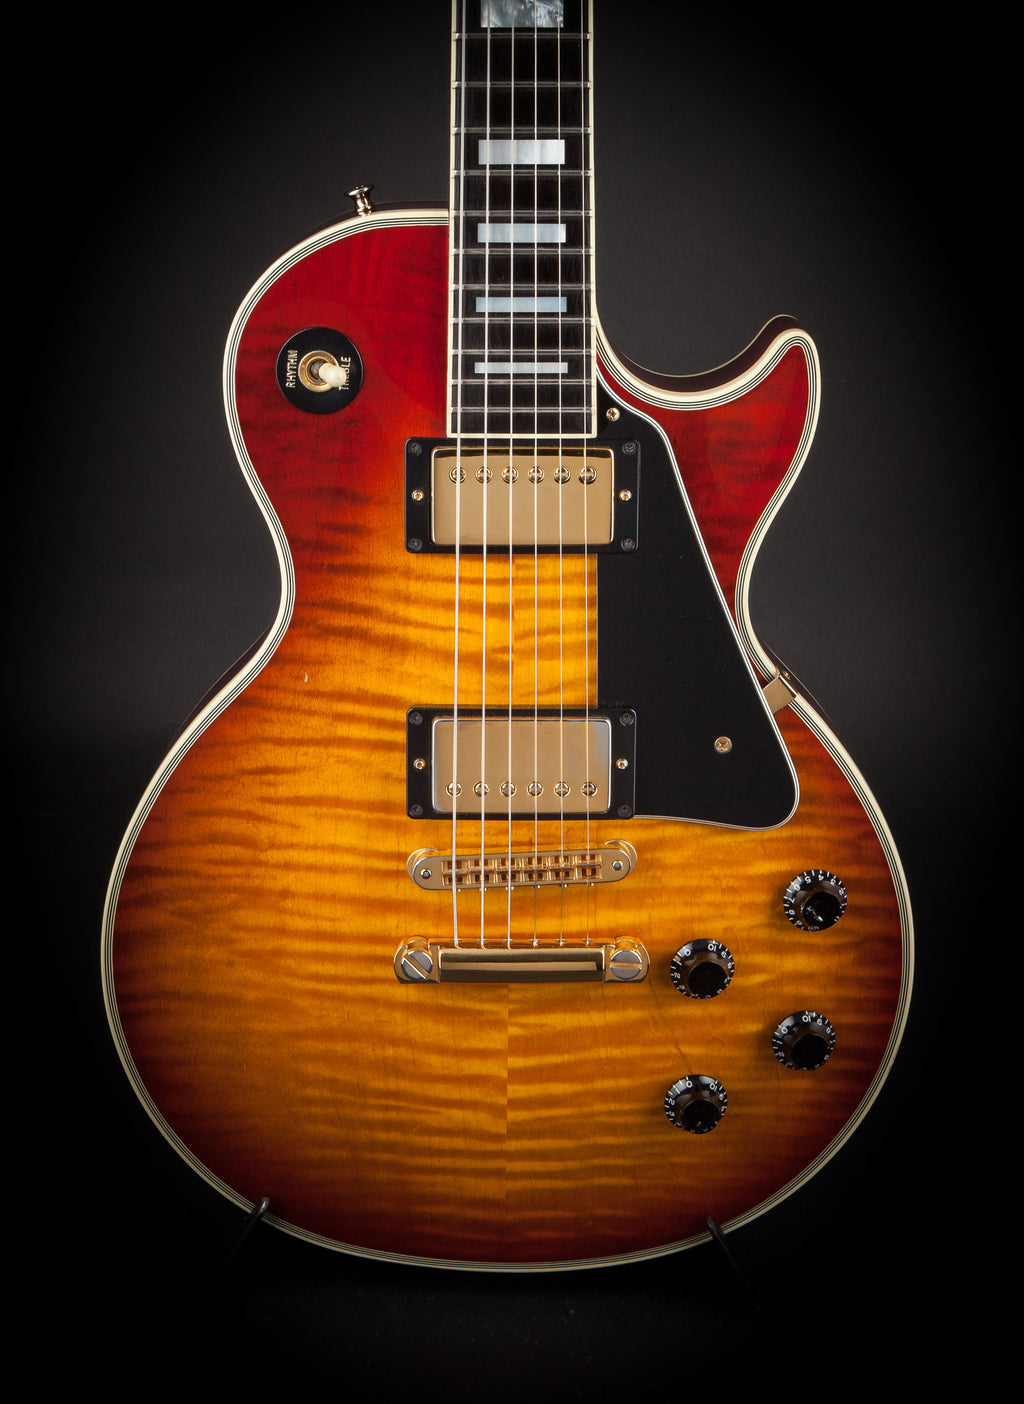 Gibson Guitars: 1991 Les Paul Custom Plus Heritage Cherry Sunburst #92131420